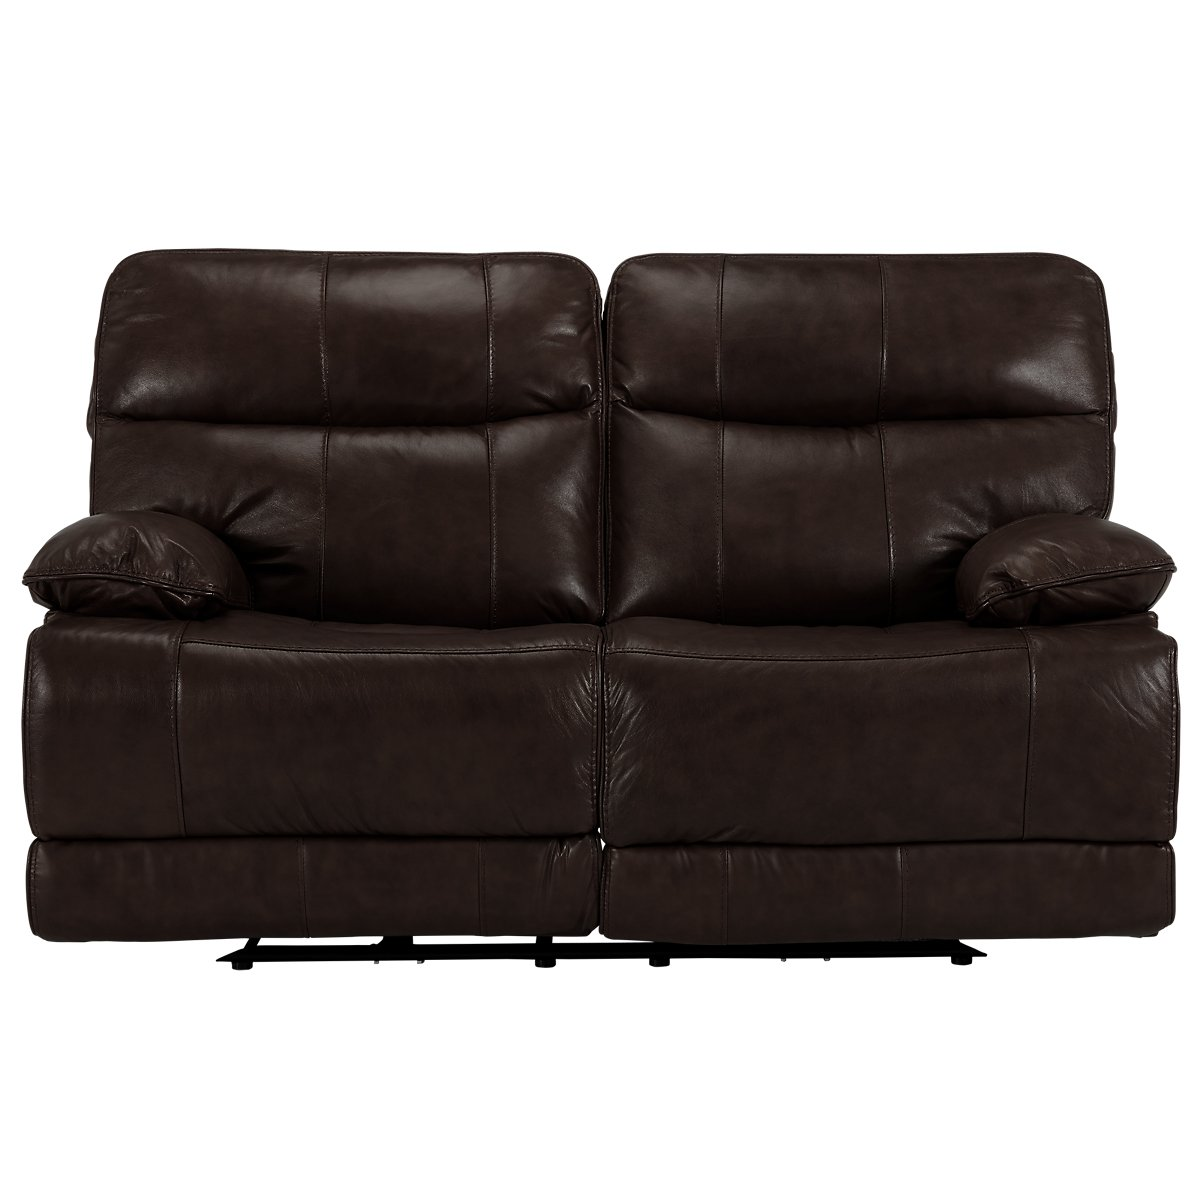 City Furniture Liam Dark Brown Leather Vinyl Reclining Loveseat